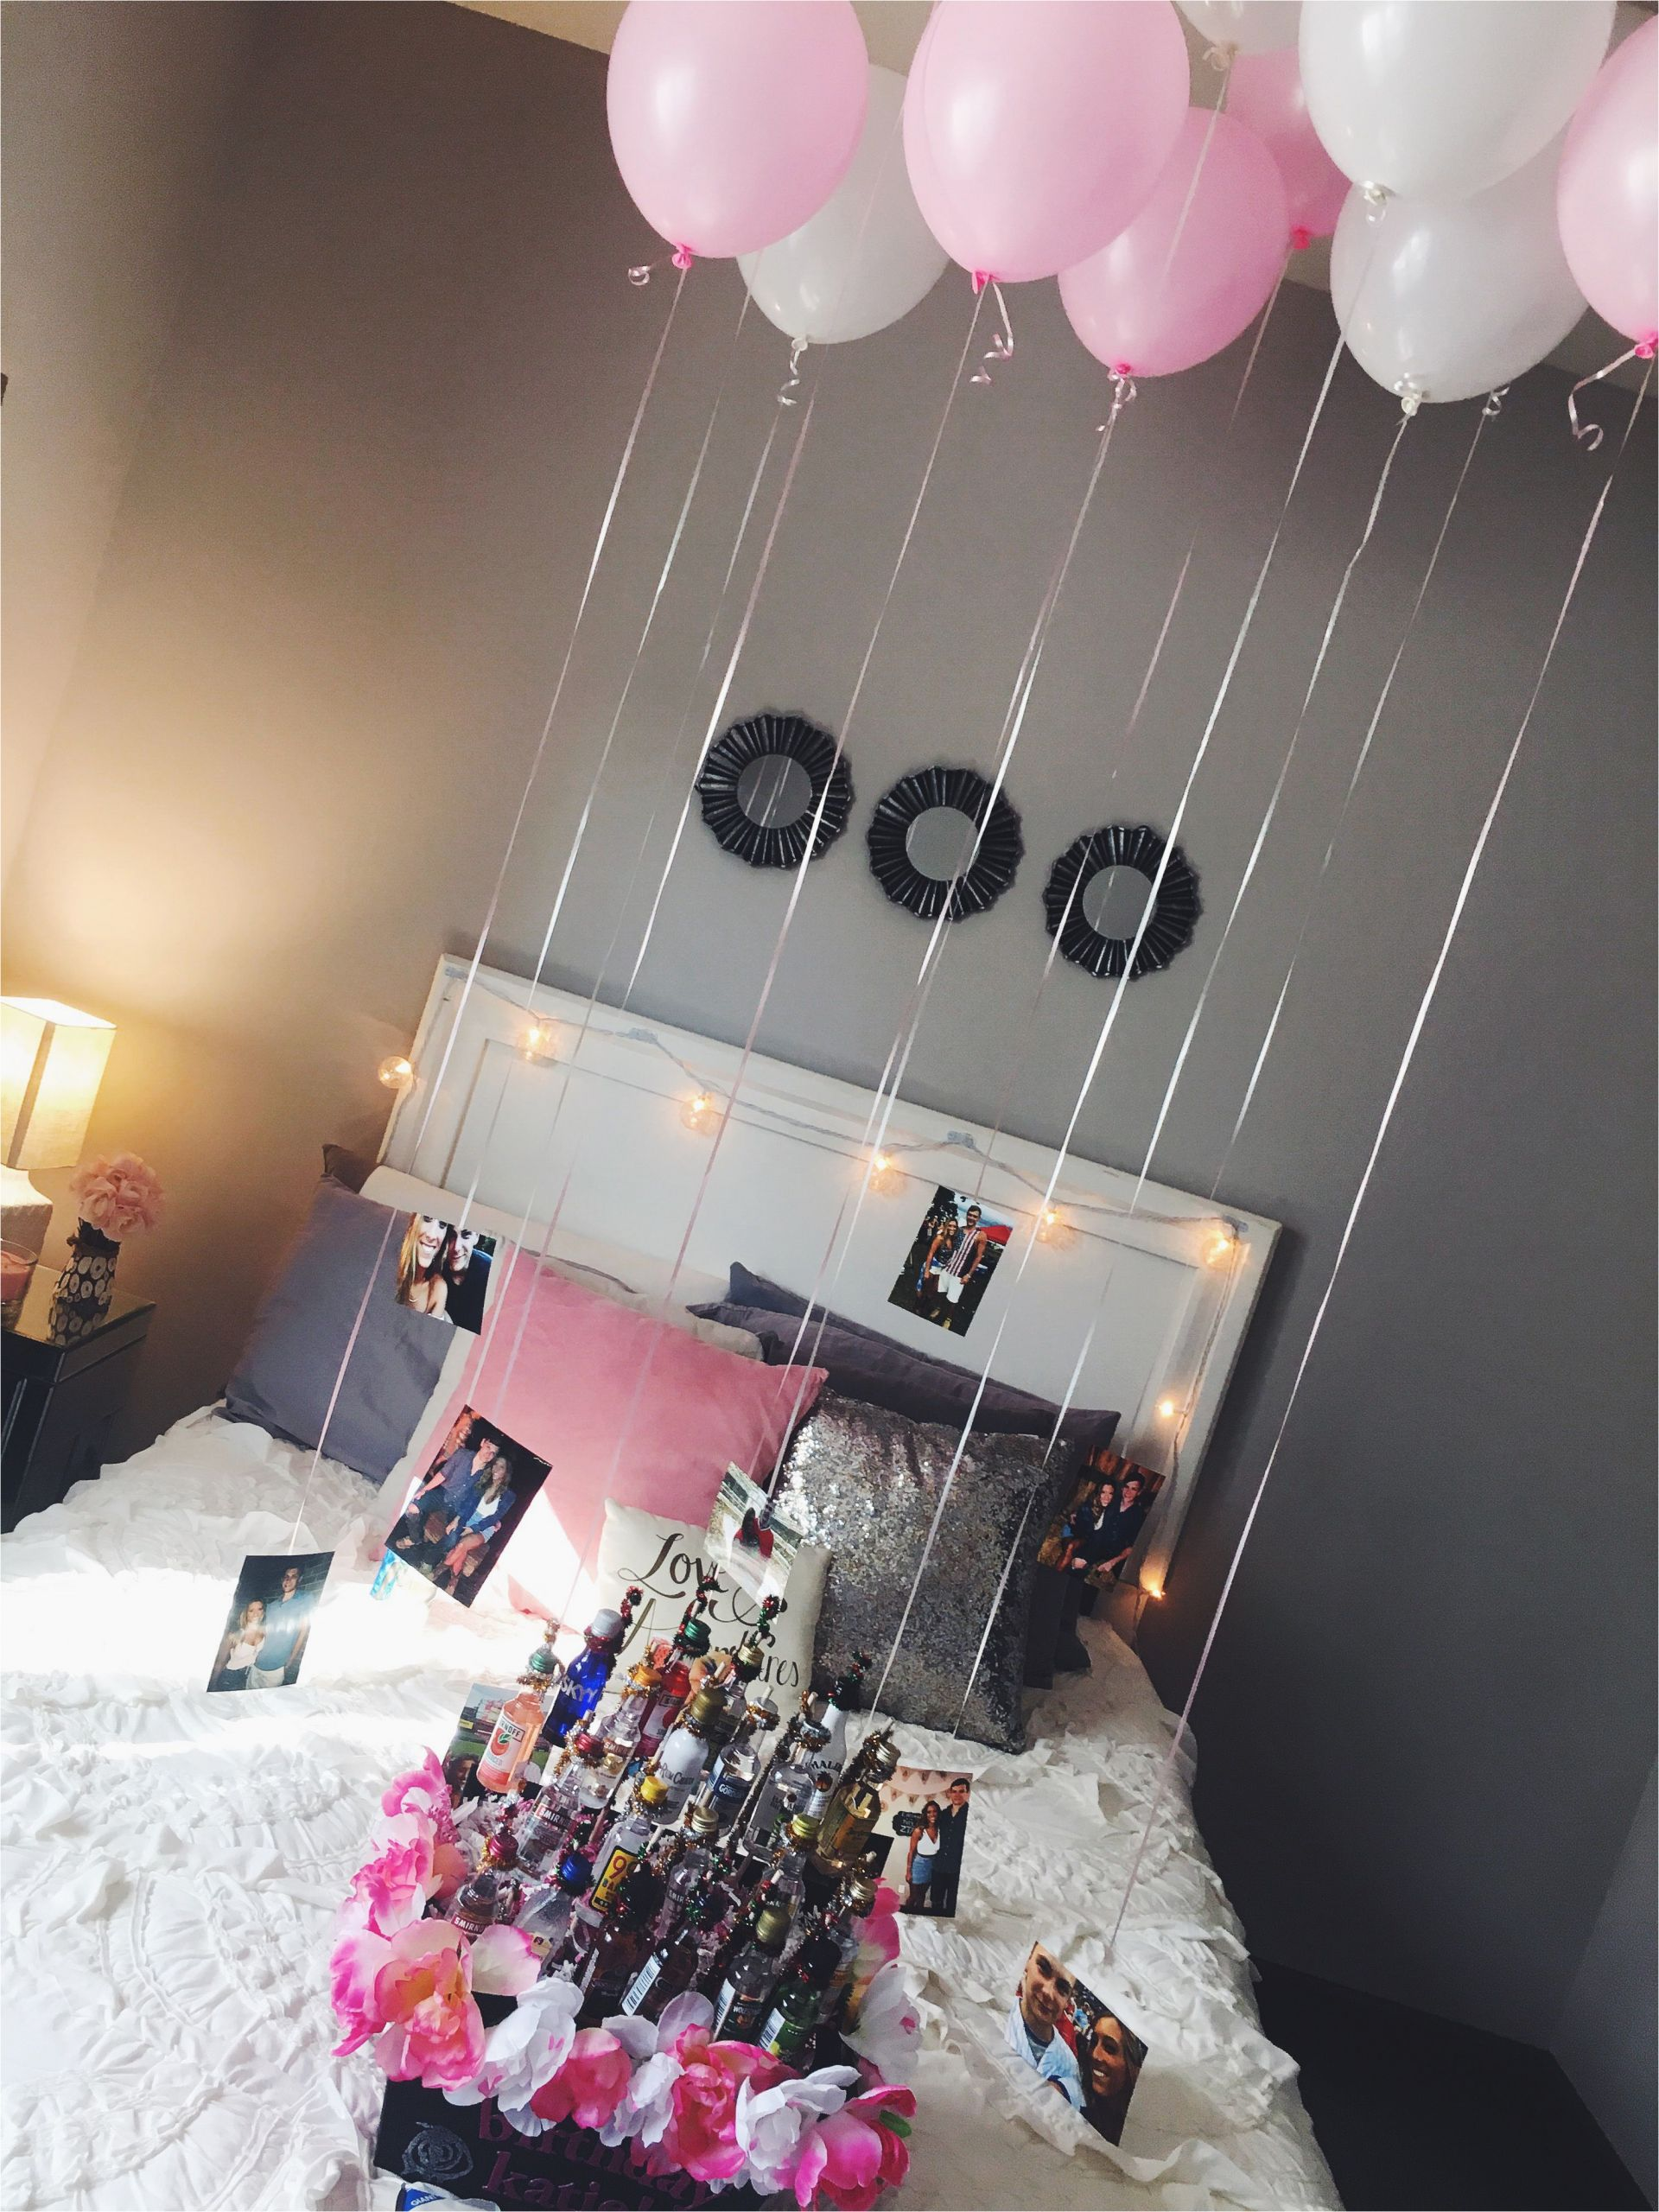 Special 21st Birthday Gifts for Boyfriend Easy and Cute Decorations for A Friend or Girlfriends 21st